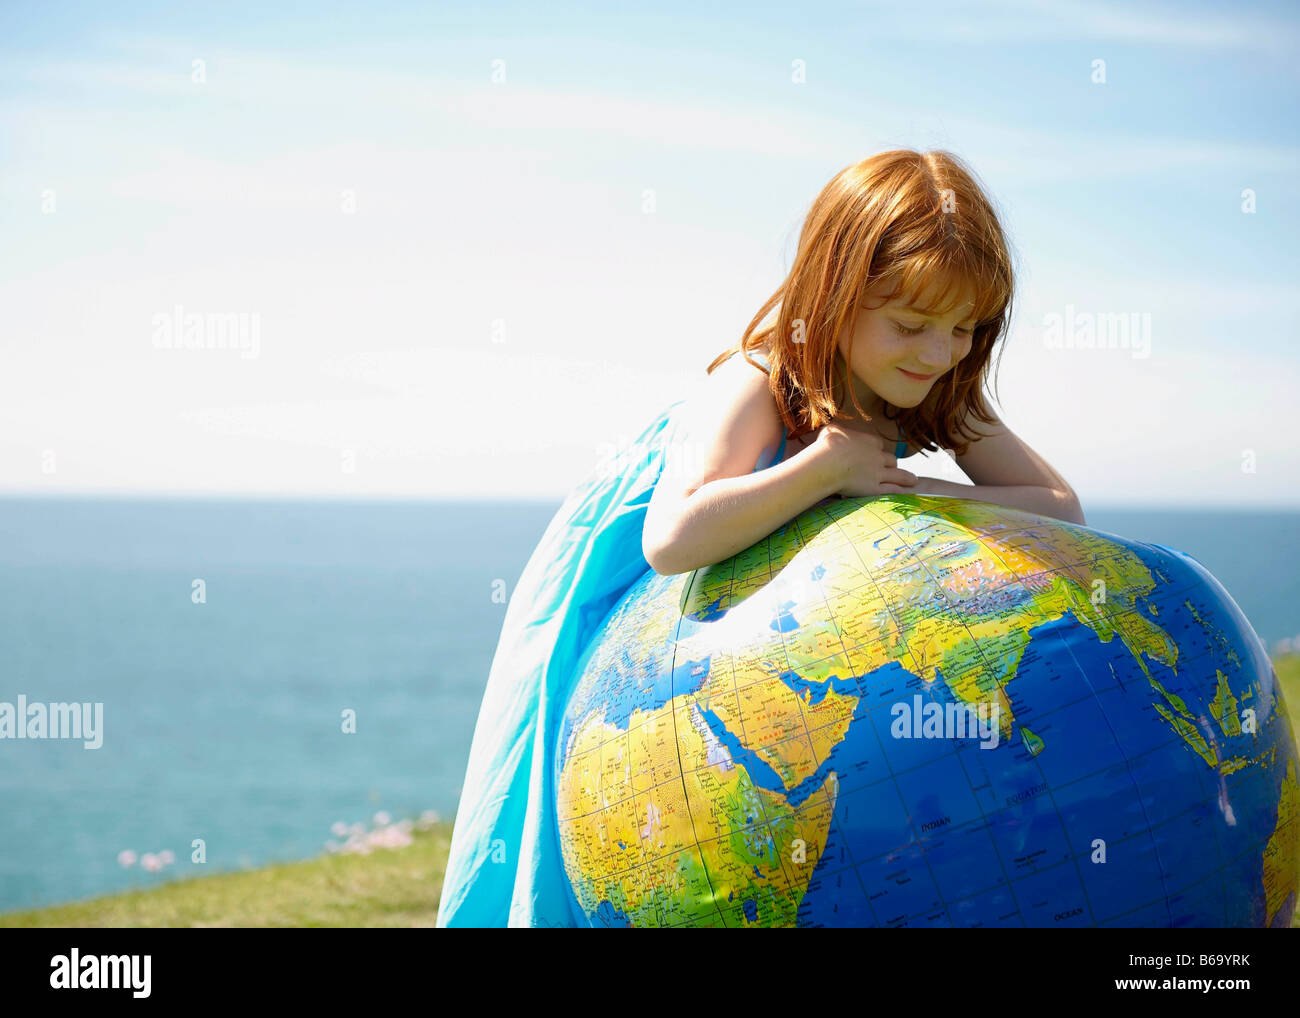 Young girl looking at inflatable globe - Stock Image